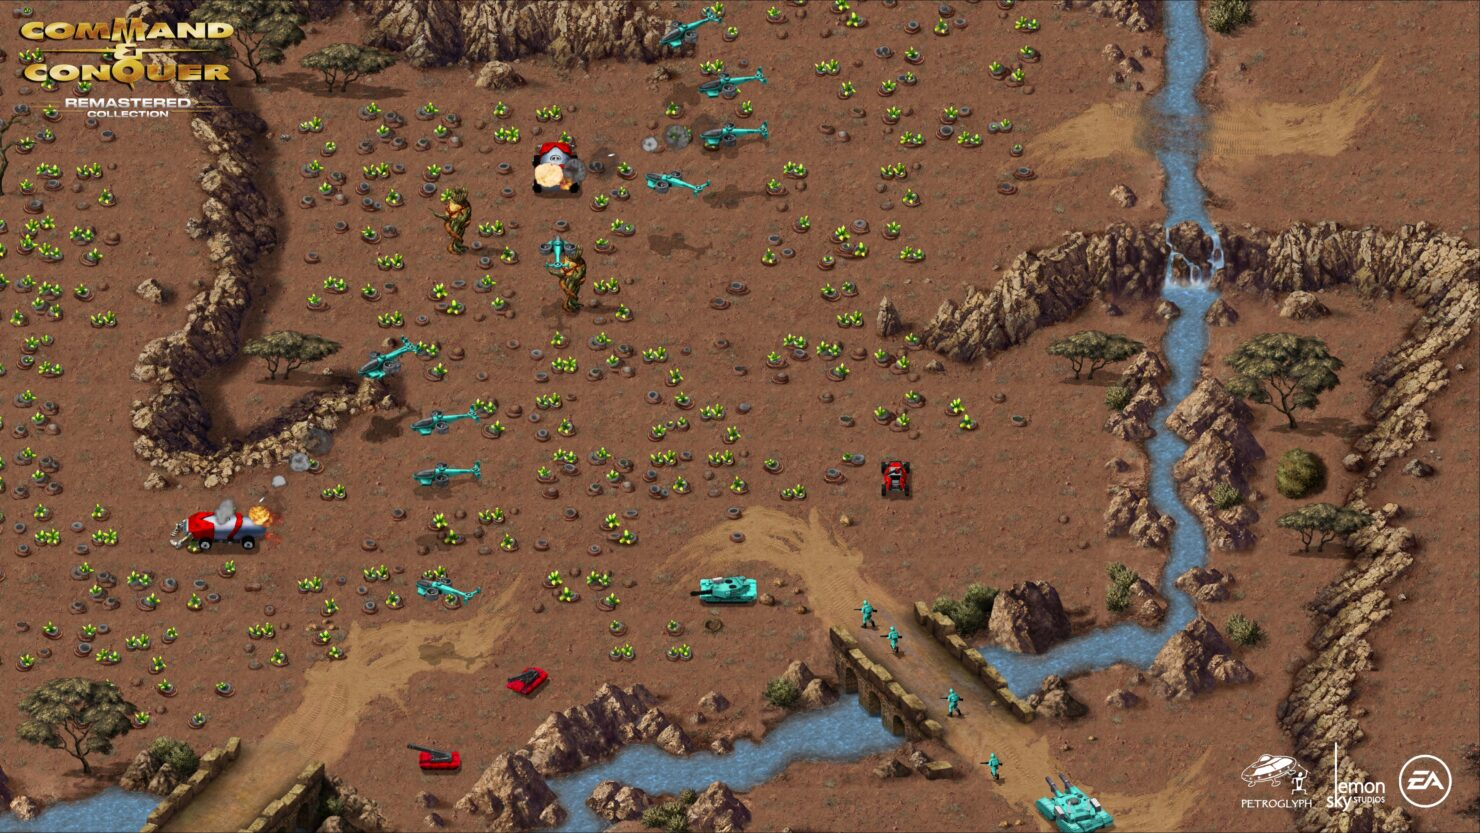 command-conquer-remastered-collection-preview-spare-13-orcas